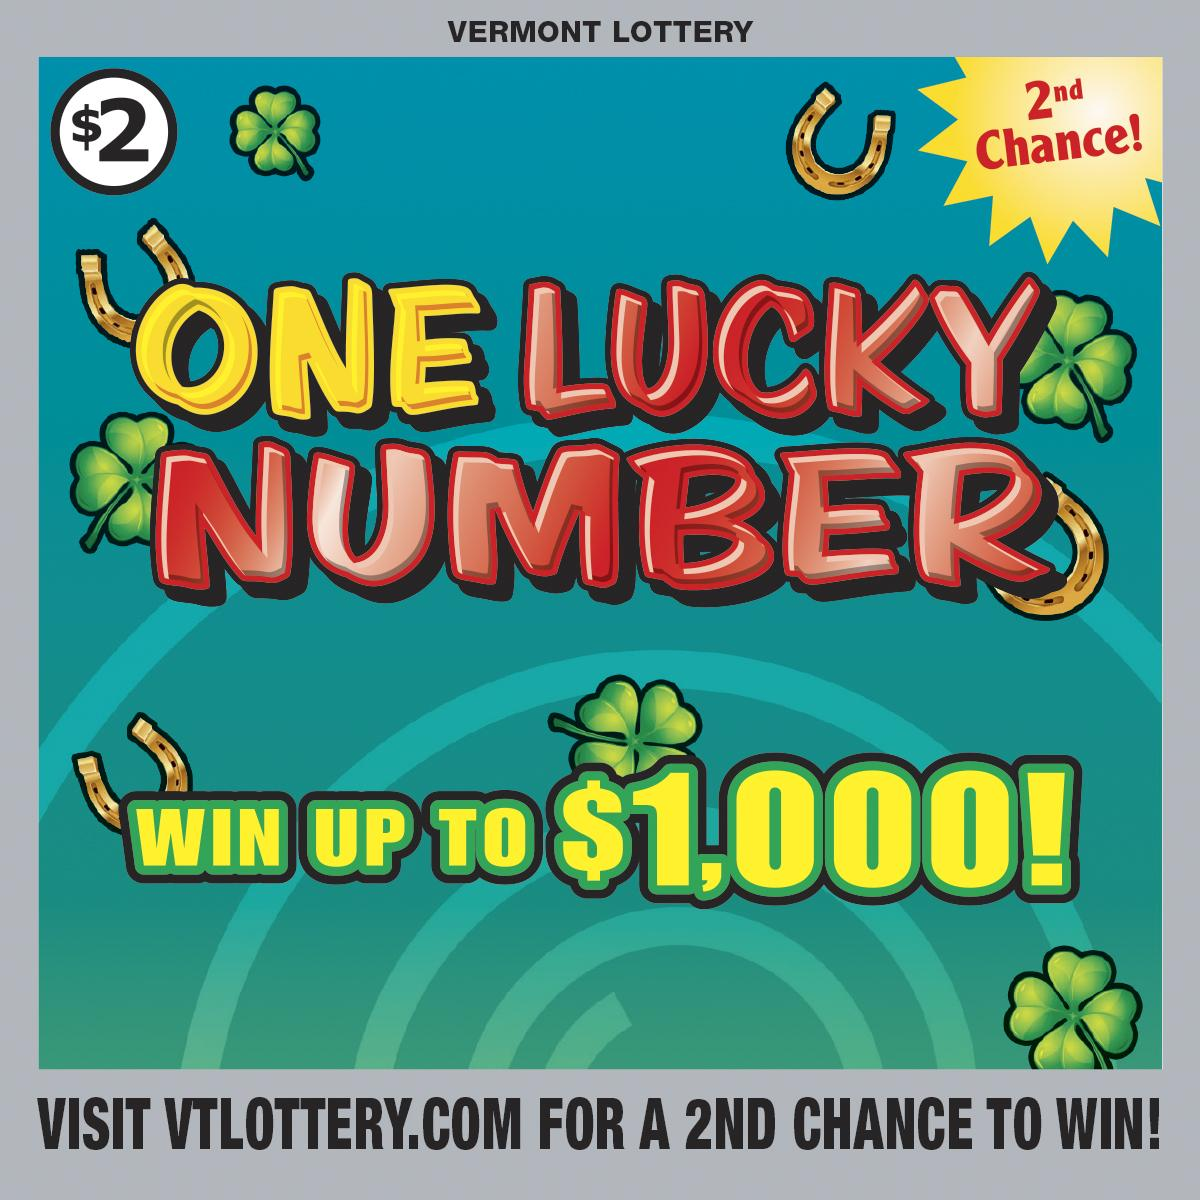 Vermont Lottery Club - Index